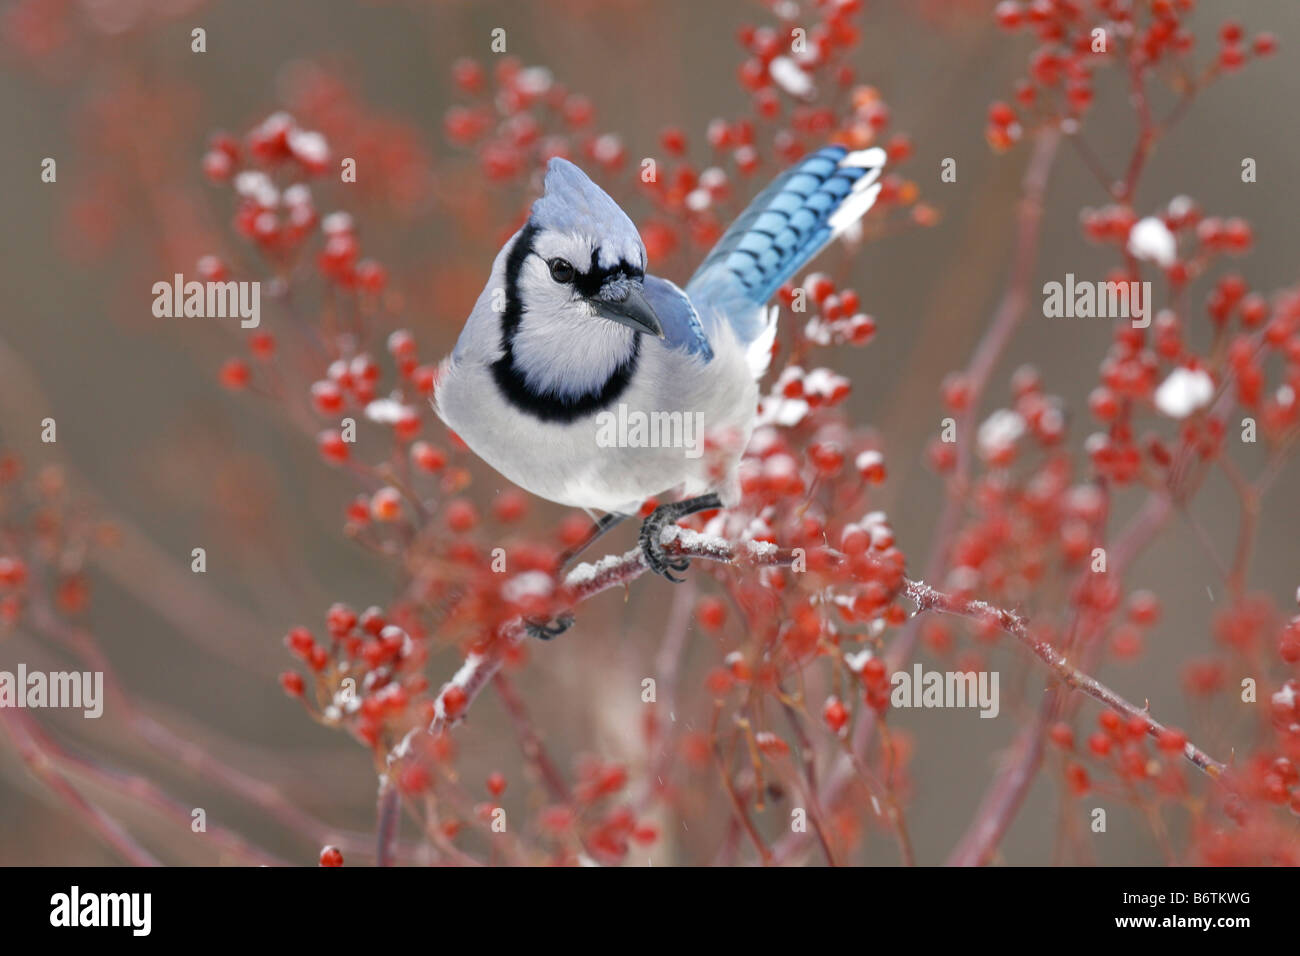 Blue Jay Perched in Multiflora Rose Berries - Stock Image